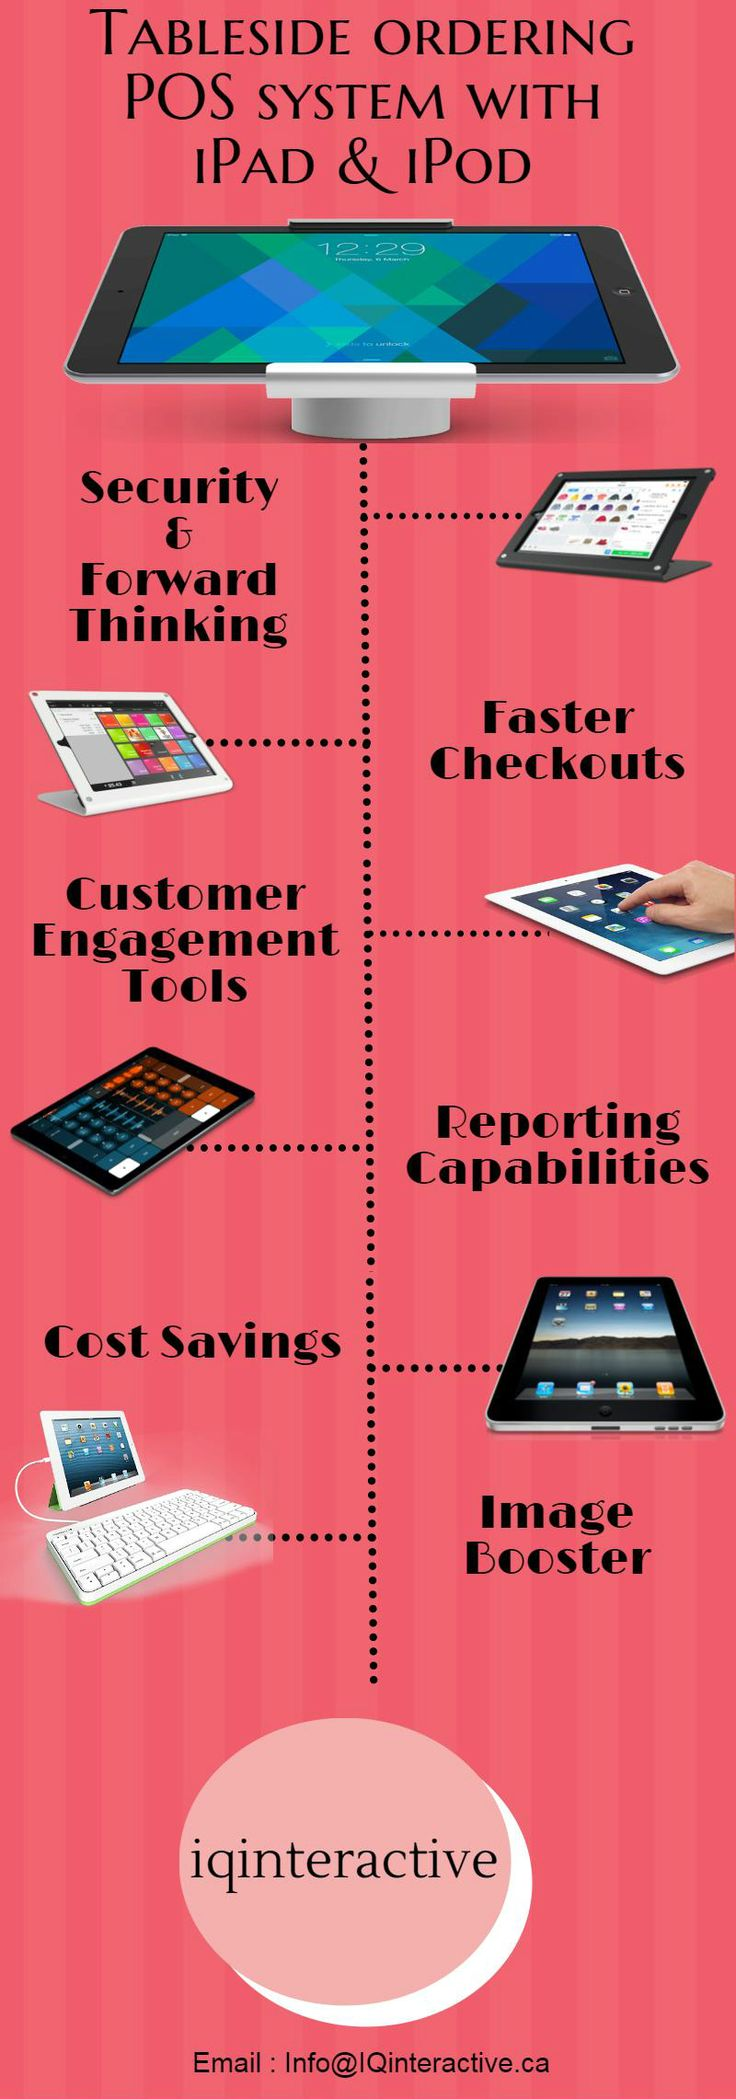 The IQ Hospitality POS design incorporates wireless mobile technology using the iPod & iPad hand held devices.